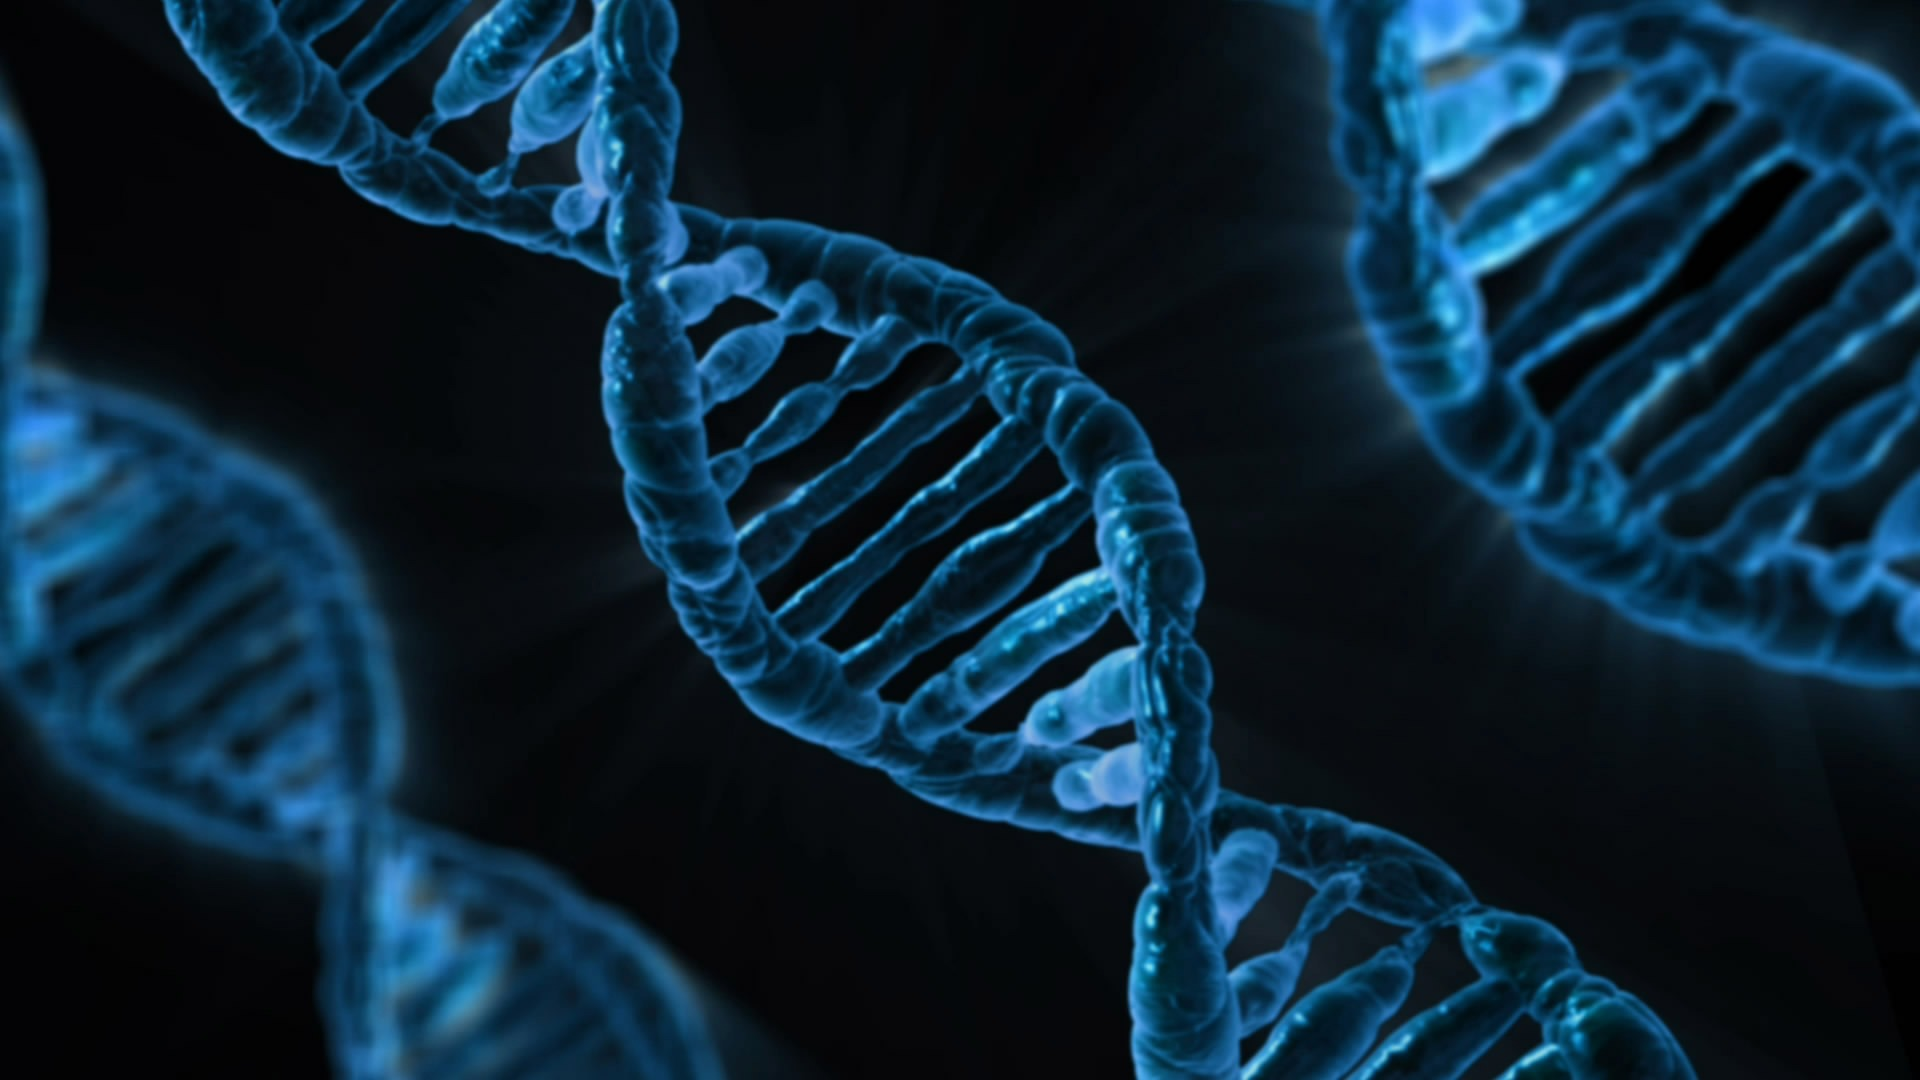 Gene editing by CRISPR can be used for medical treatment in humans